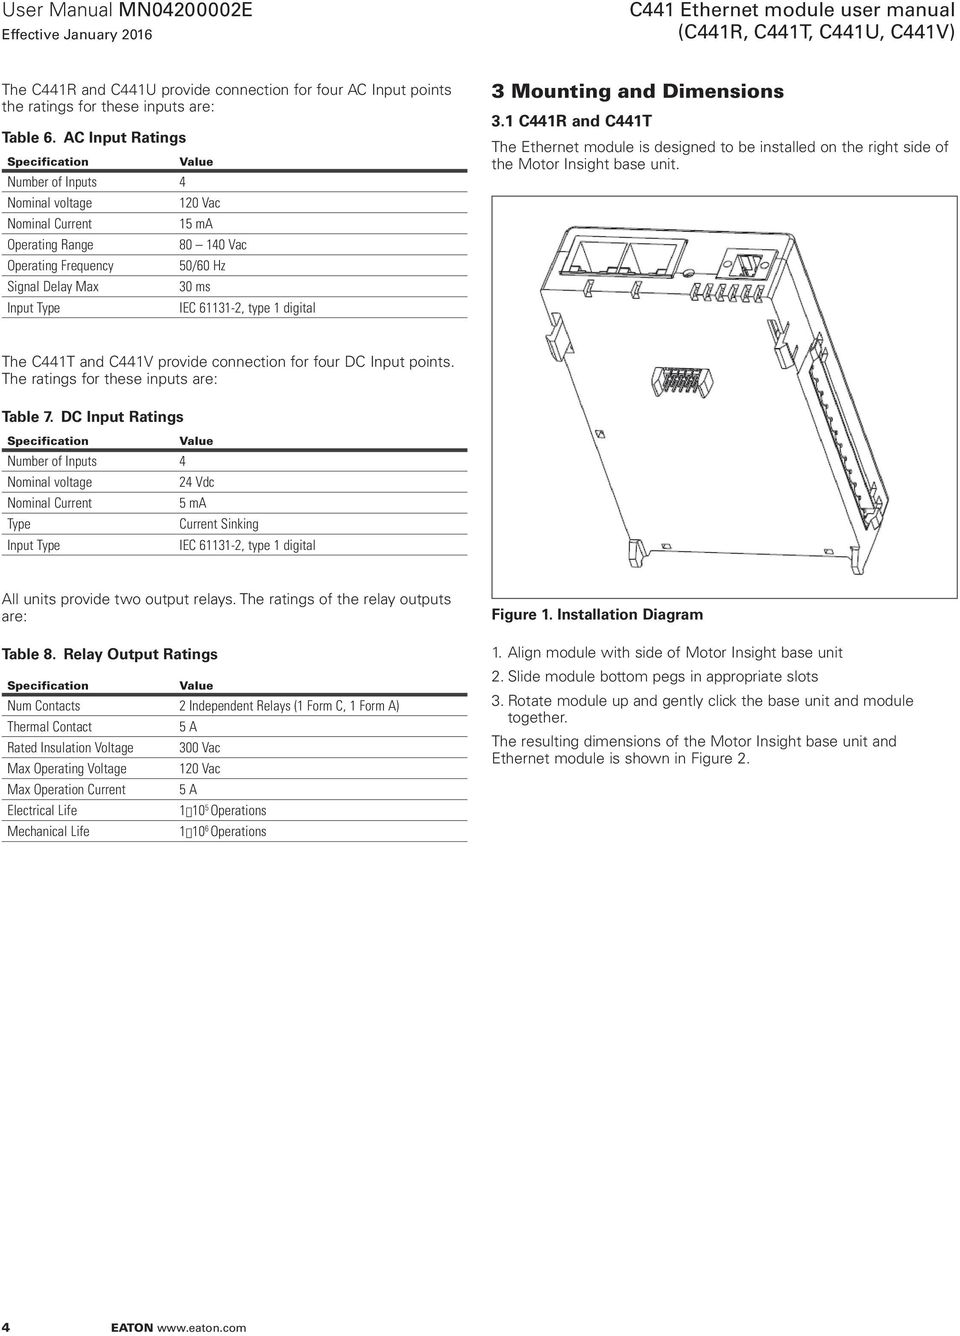 hight resolution of 61131 2 type 1 digital 3 mounting and dimensions 3 1 c441r and c441t the